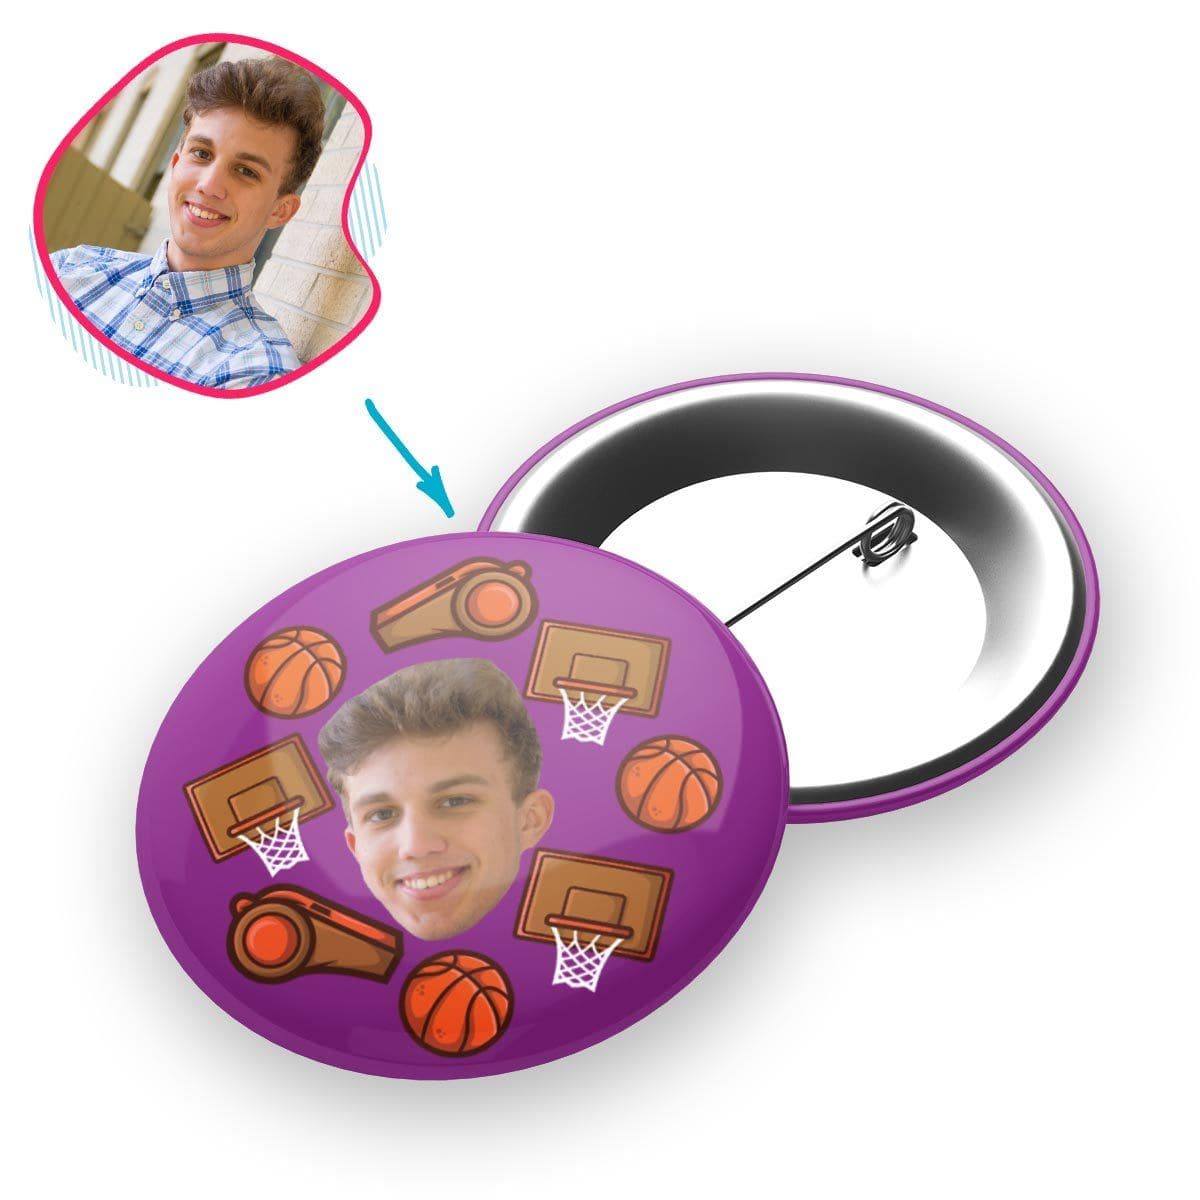 purple Basketball pin personalized with photo of face printed on it